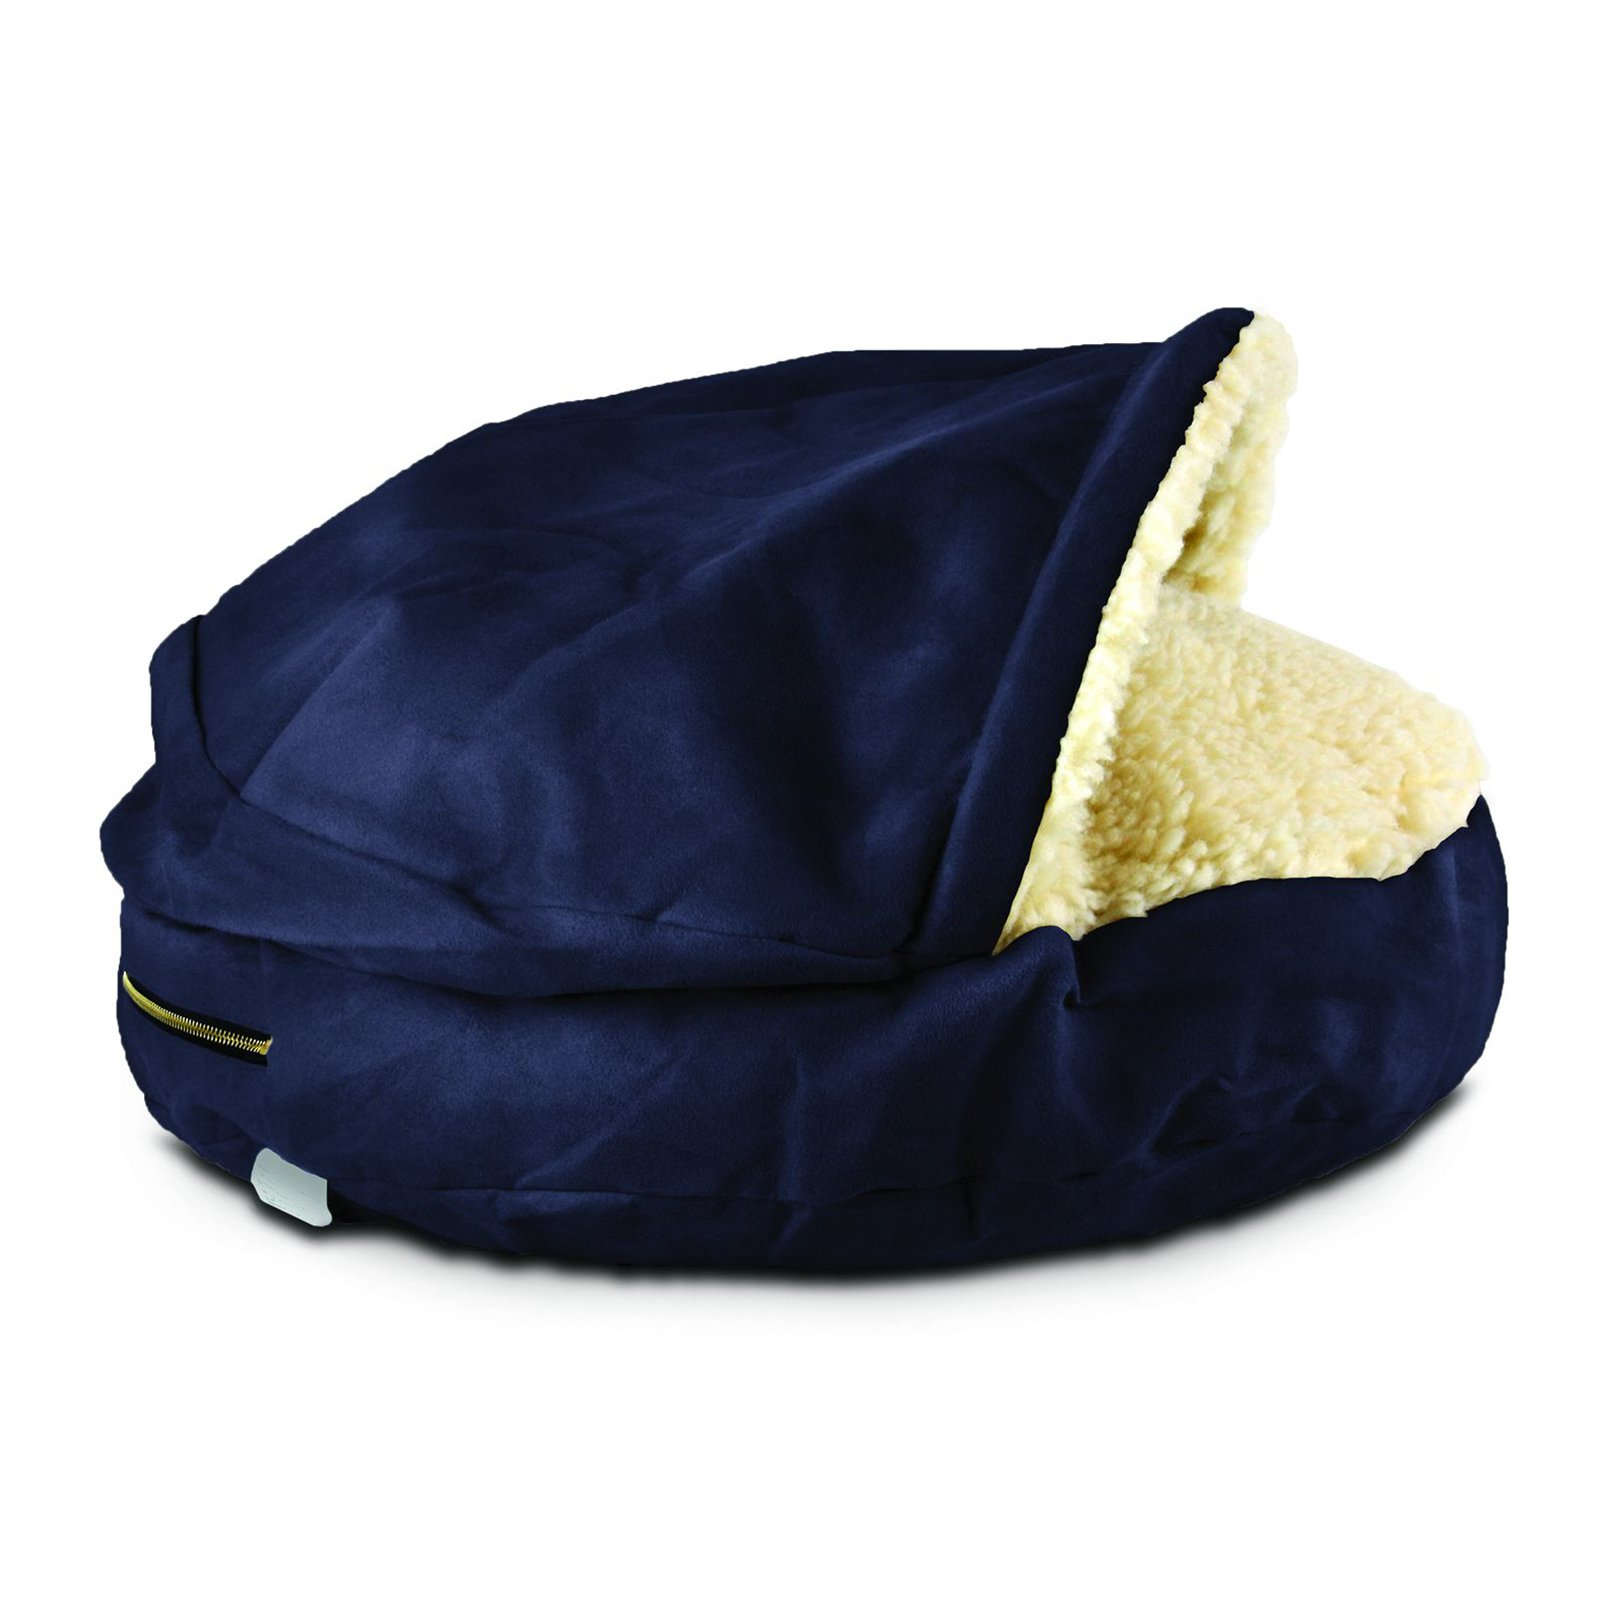 Snoozer Cozy Dog Cave Navy Products in 2019 Pet beds